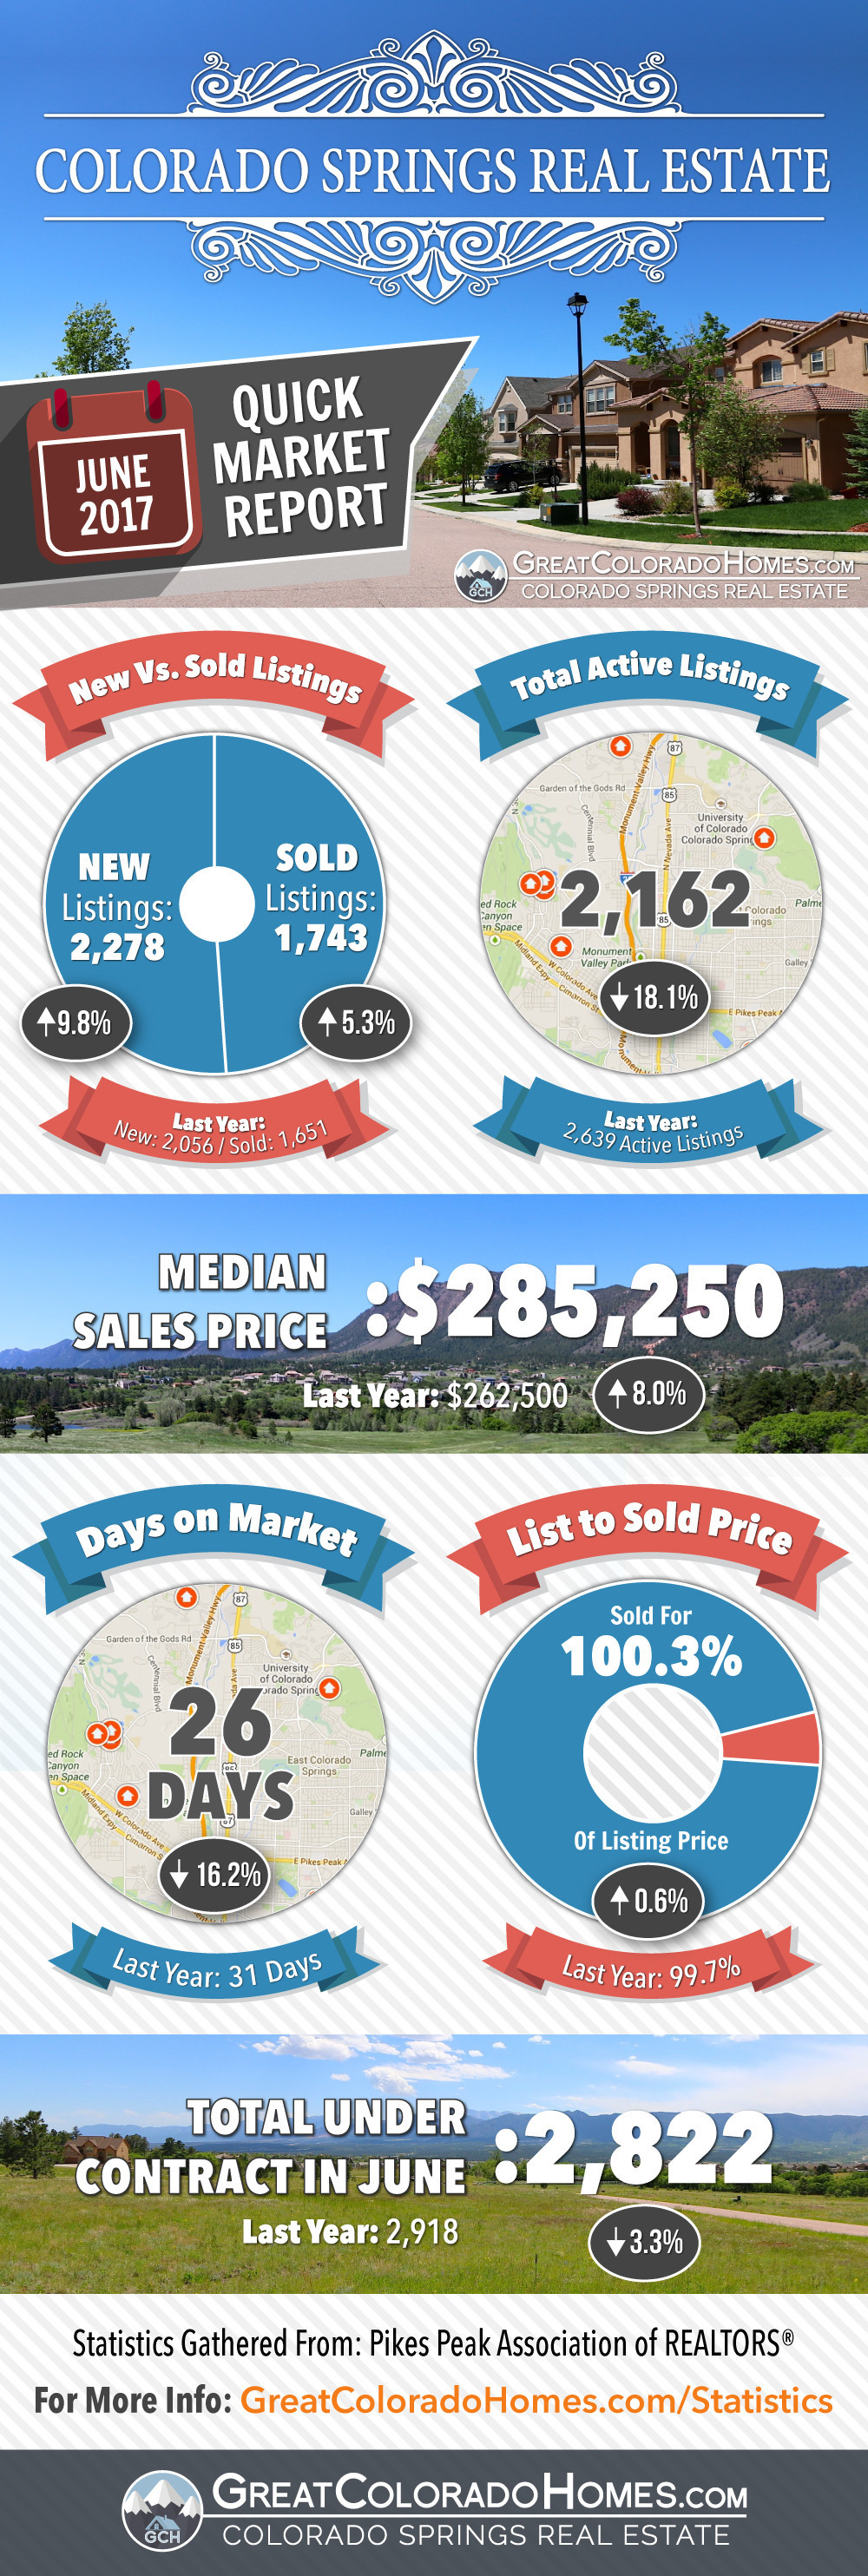 June 2017 Colorado Springs Real Estate Market Statistics